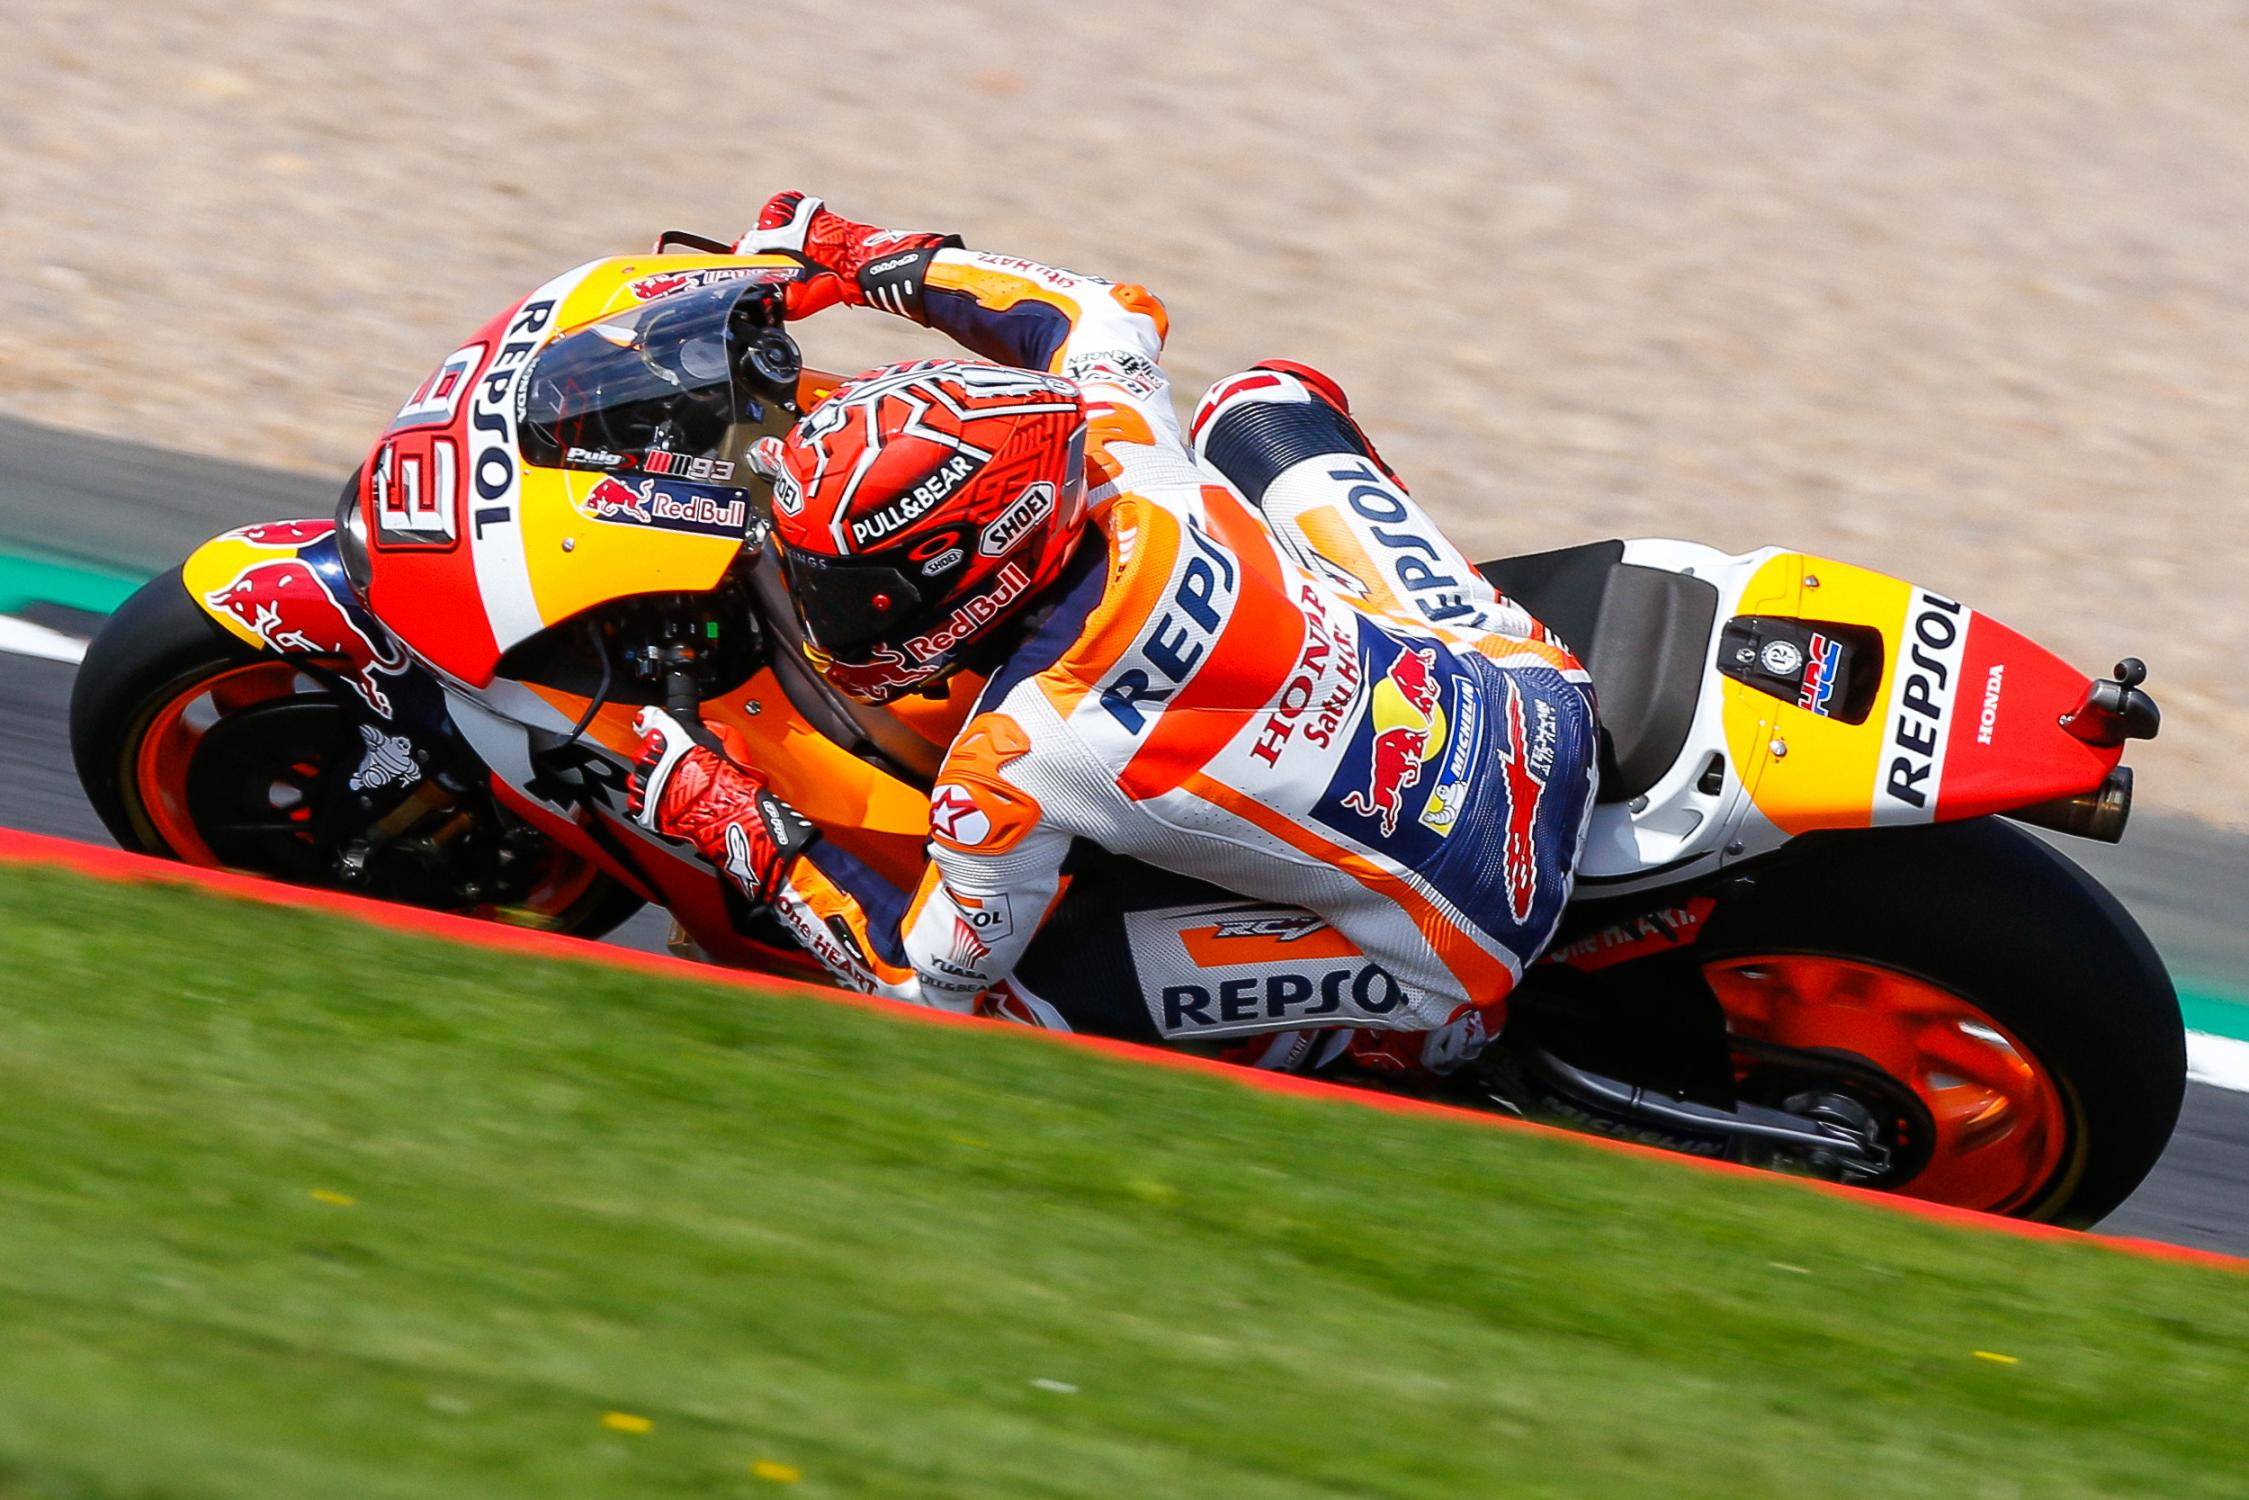 93-marc-marquez-esp_gp_7220.gallery_full_top_fullscreen.jpg